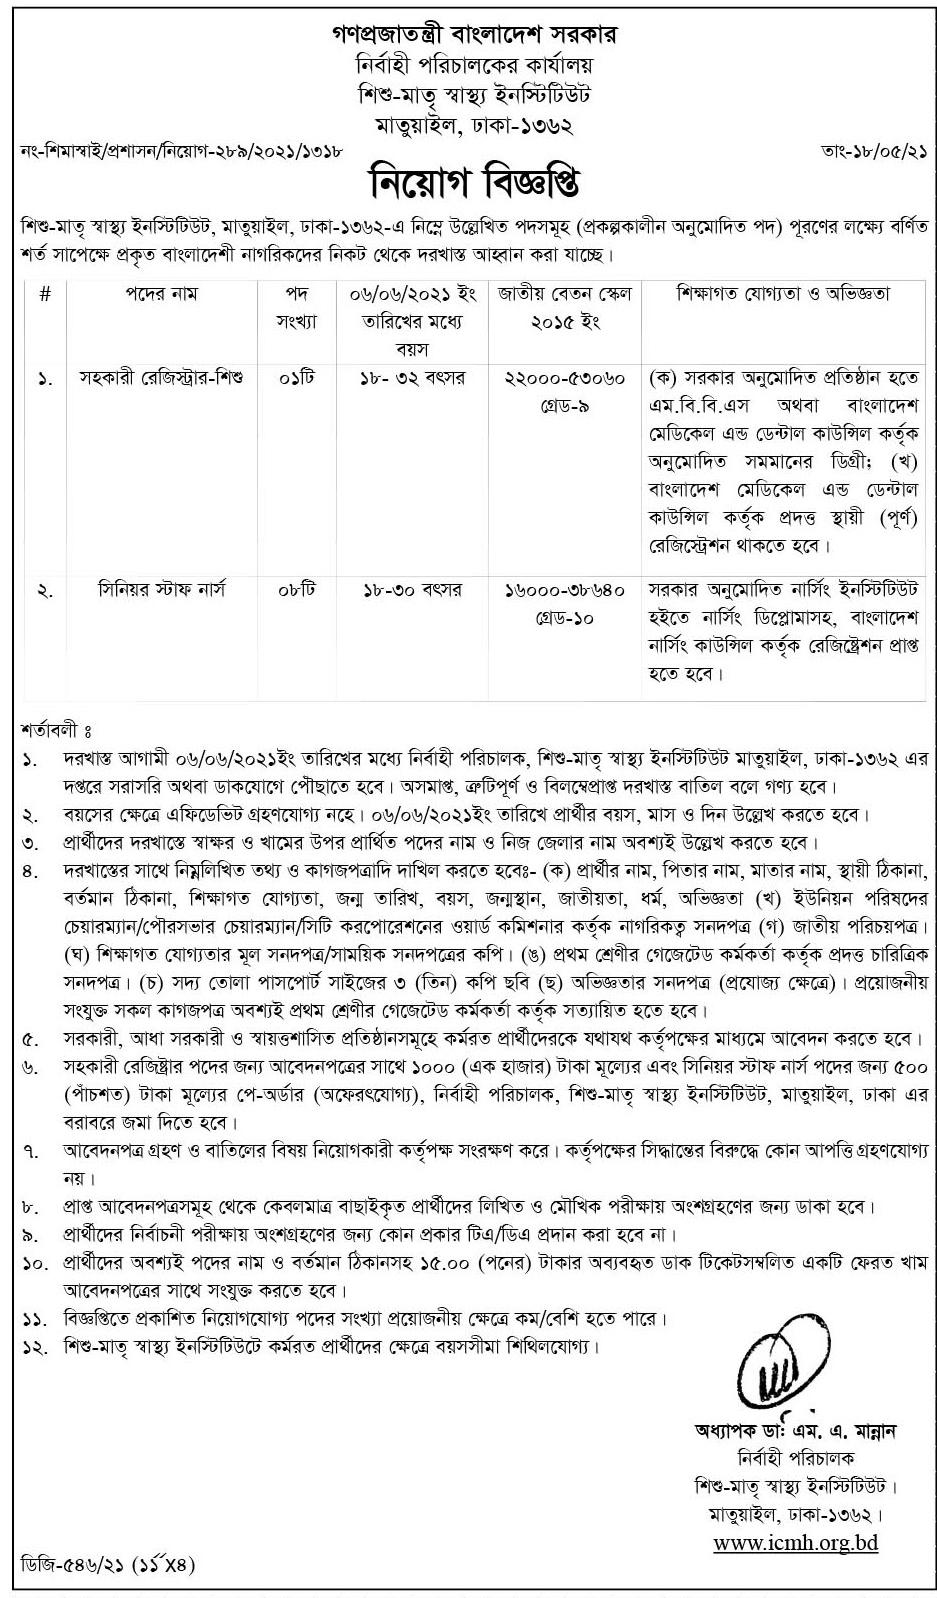 Institute of Child and Mother Health Job Circular 2021